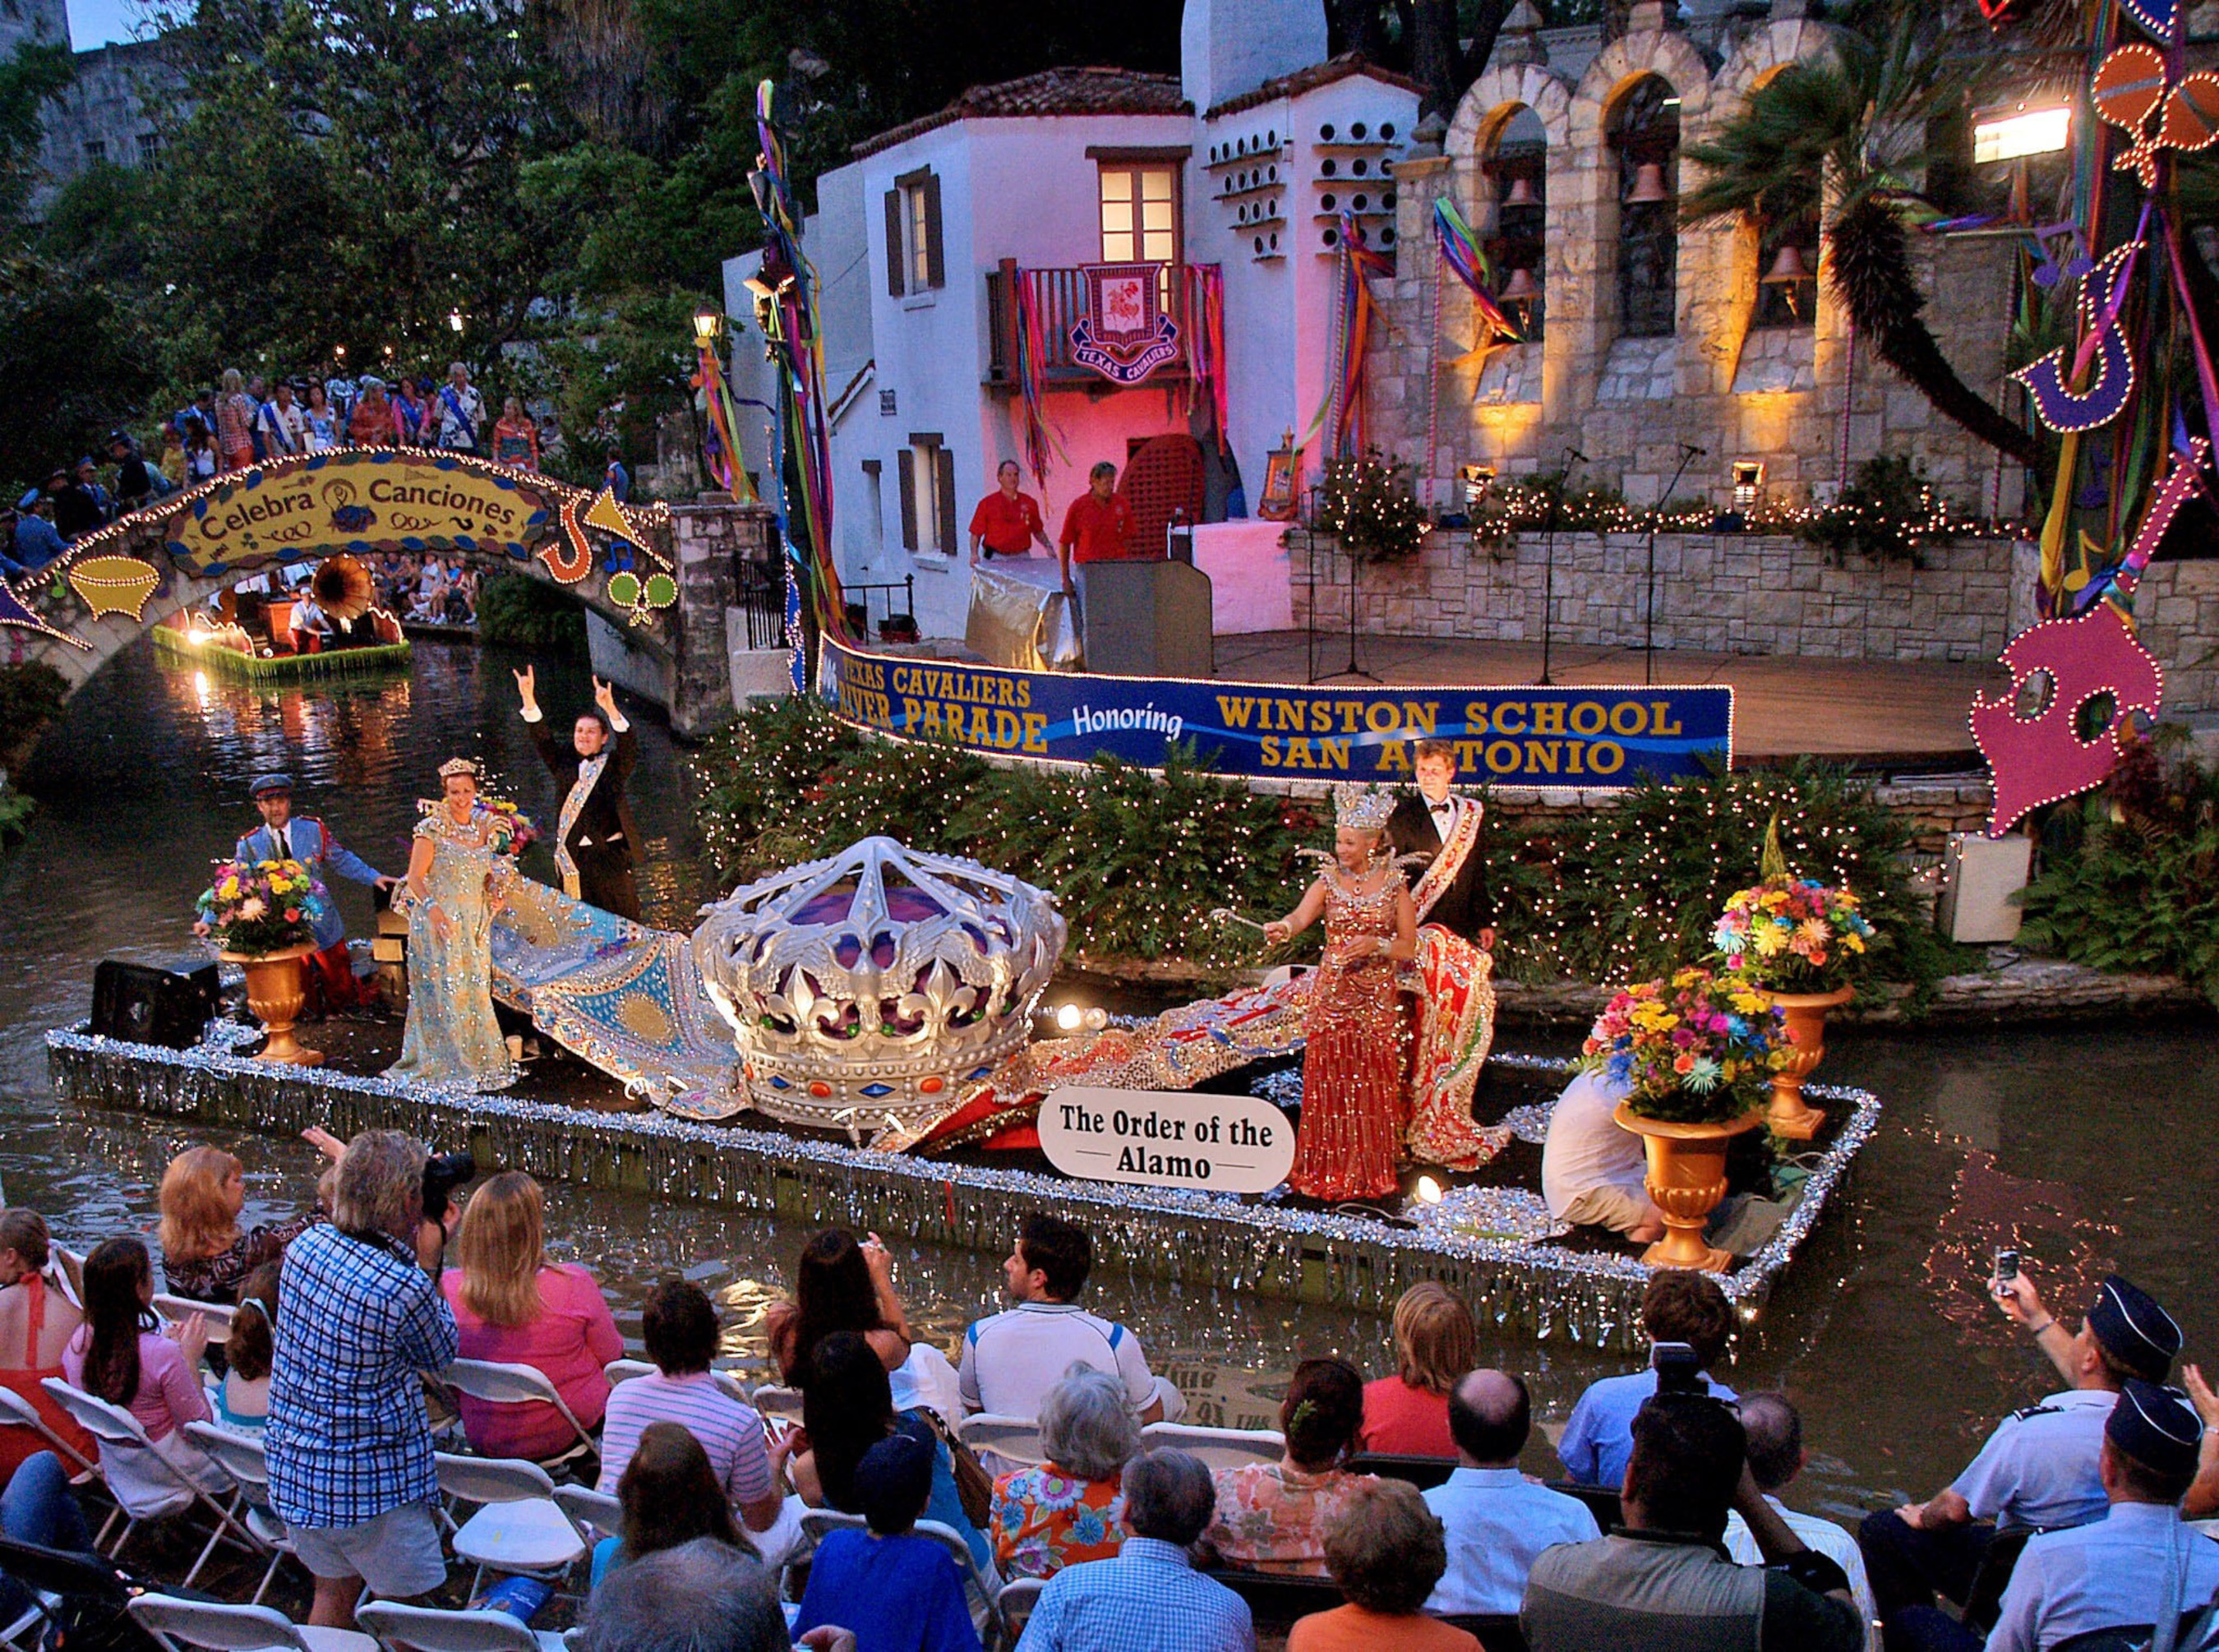 San Antonio kicks off Fiesta with 11 days of culture, charity and fun. With more than 110 events, 52 stages, 35 concerts, 33 food events and 14 parades, Fiesta has something for every visitor. (PRNewsFoto/San Antonio Convention & Visitors Bureau)